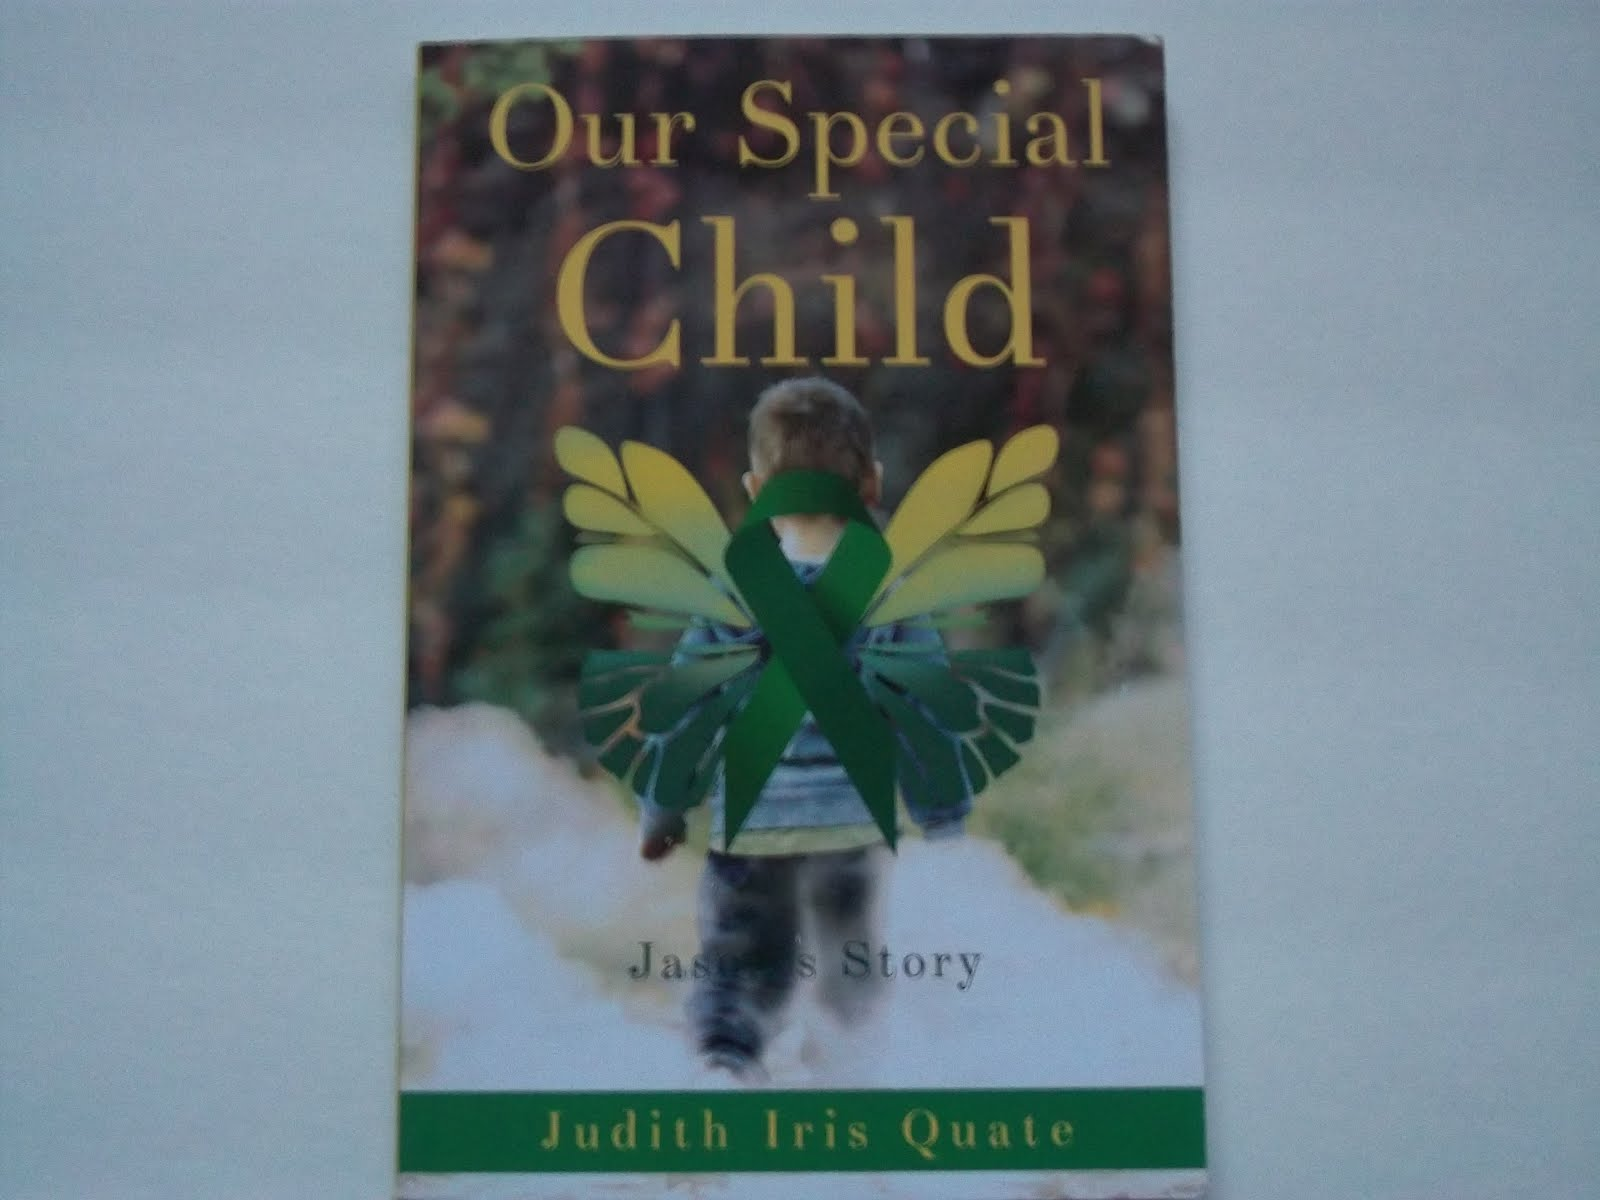 'OUR SPECIAL  CHILD' JASON'S STORY BY JUDITH IRIS QUATE